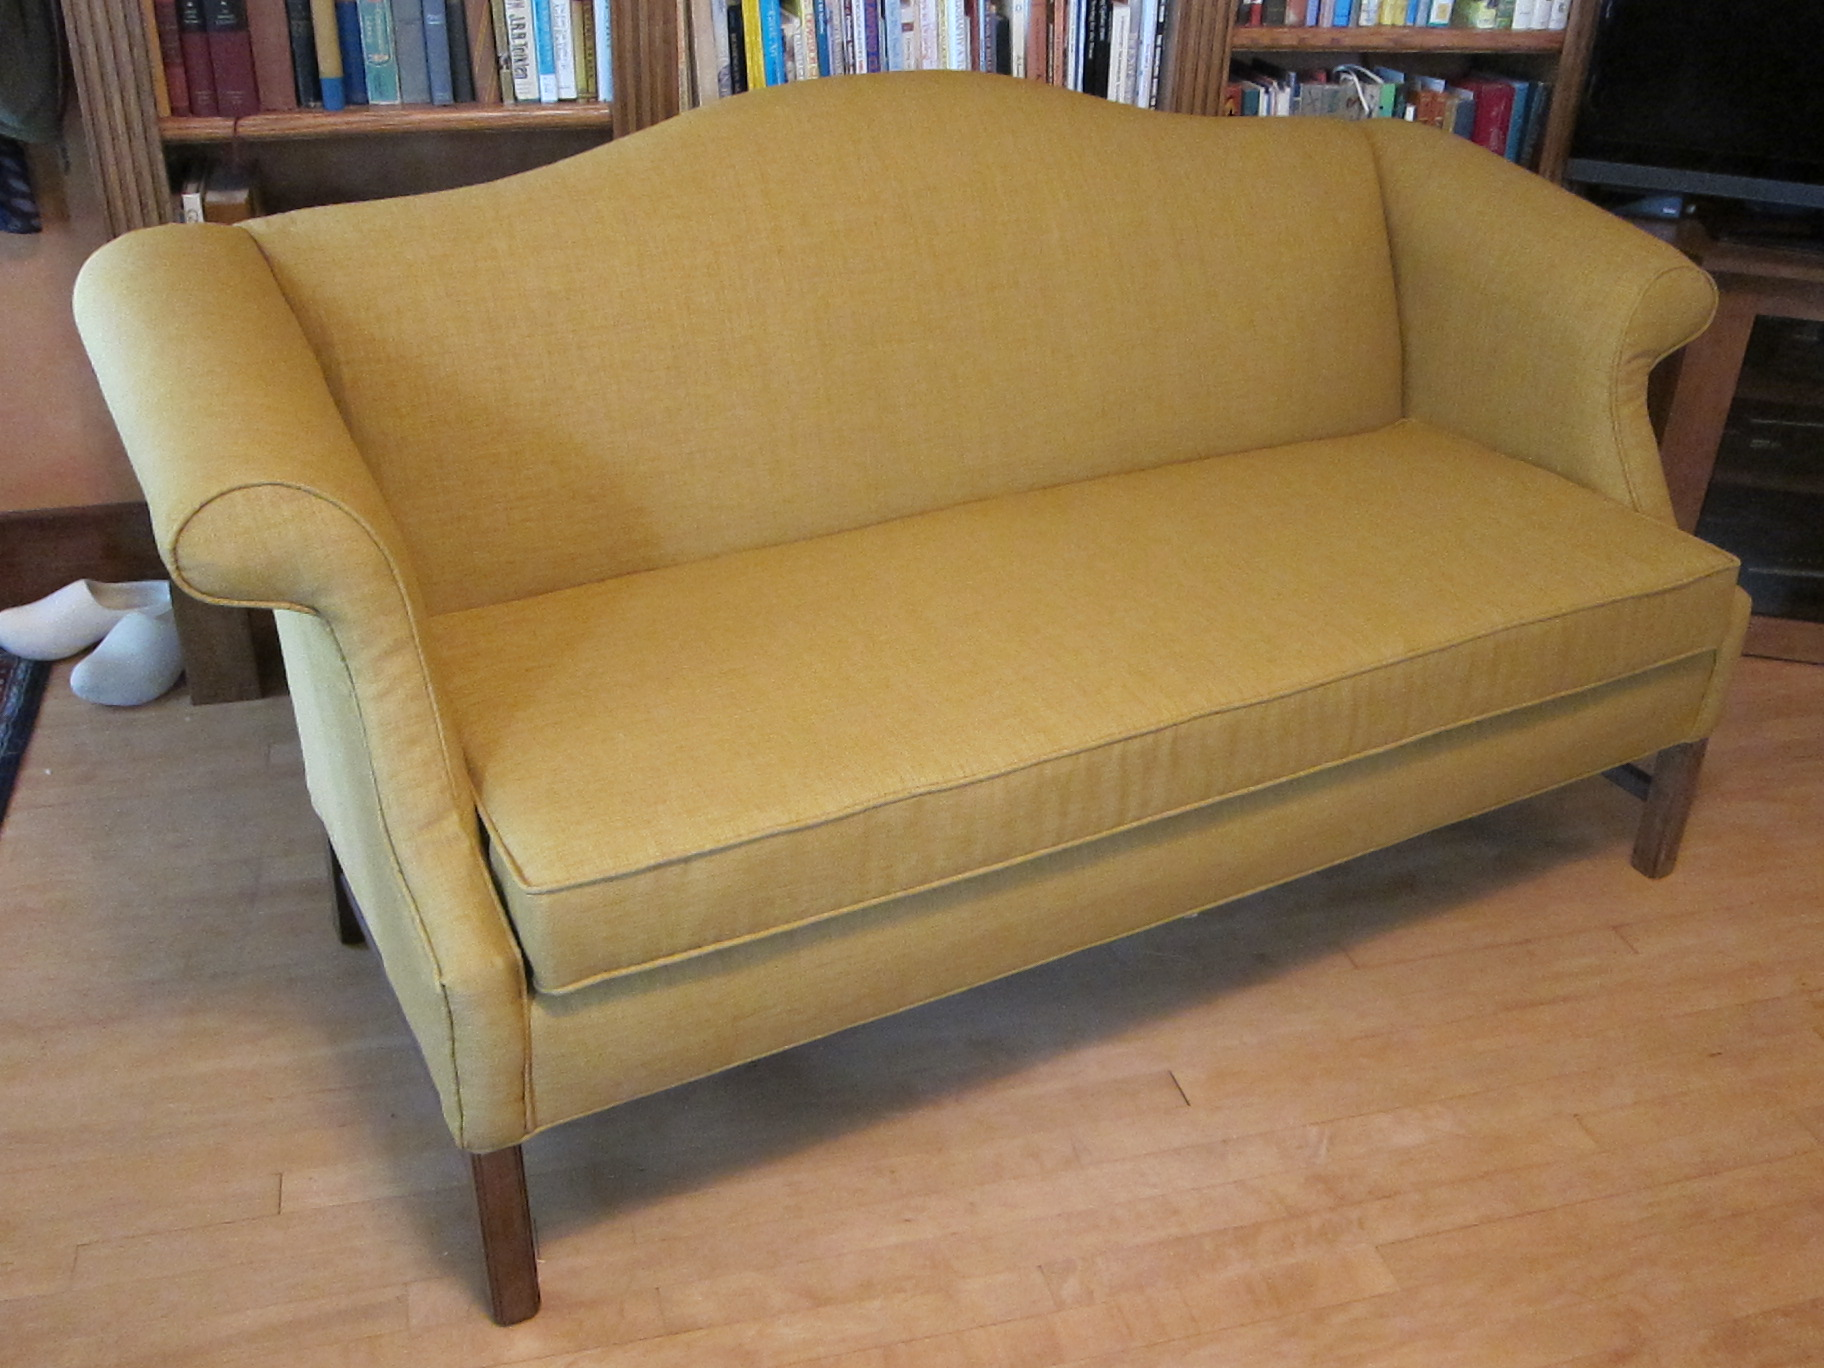 With a bright new cover this favorite sofa is ready to take a place of prominence in the home